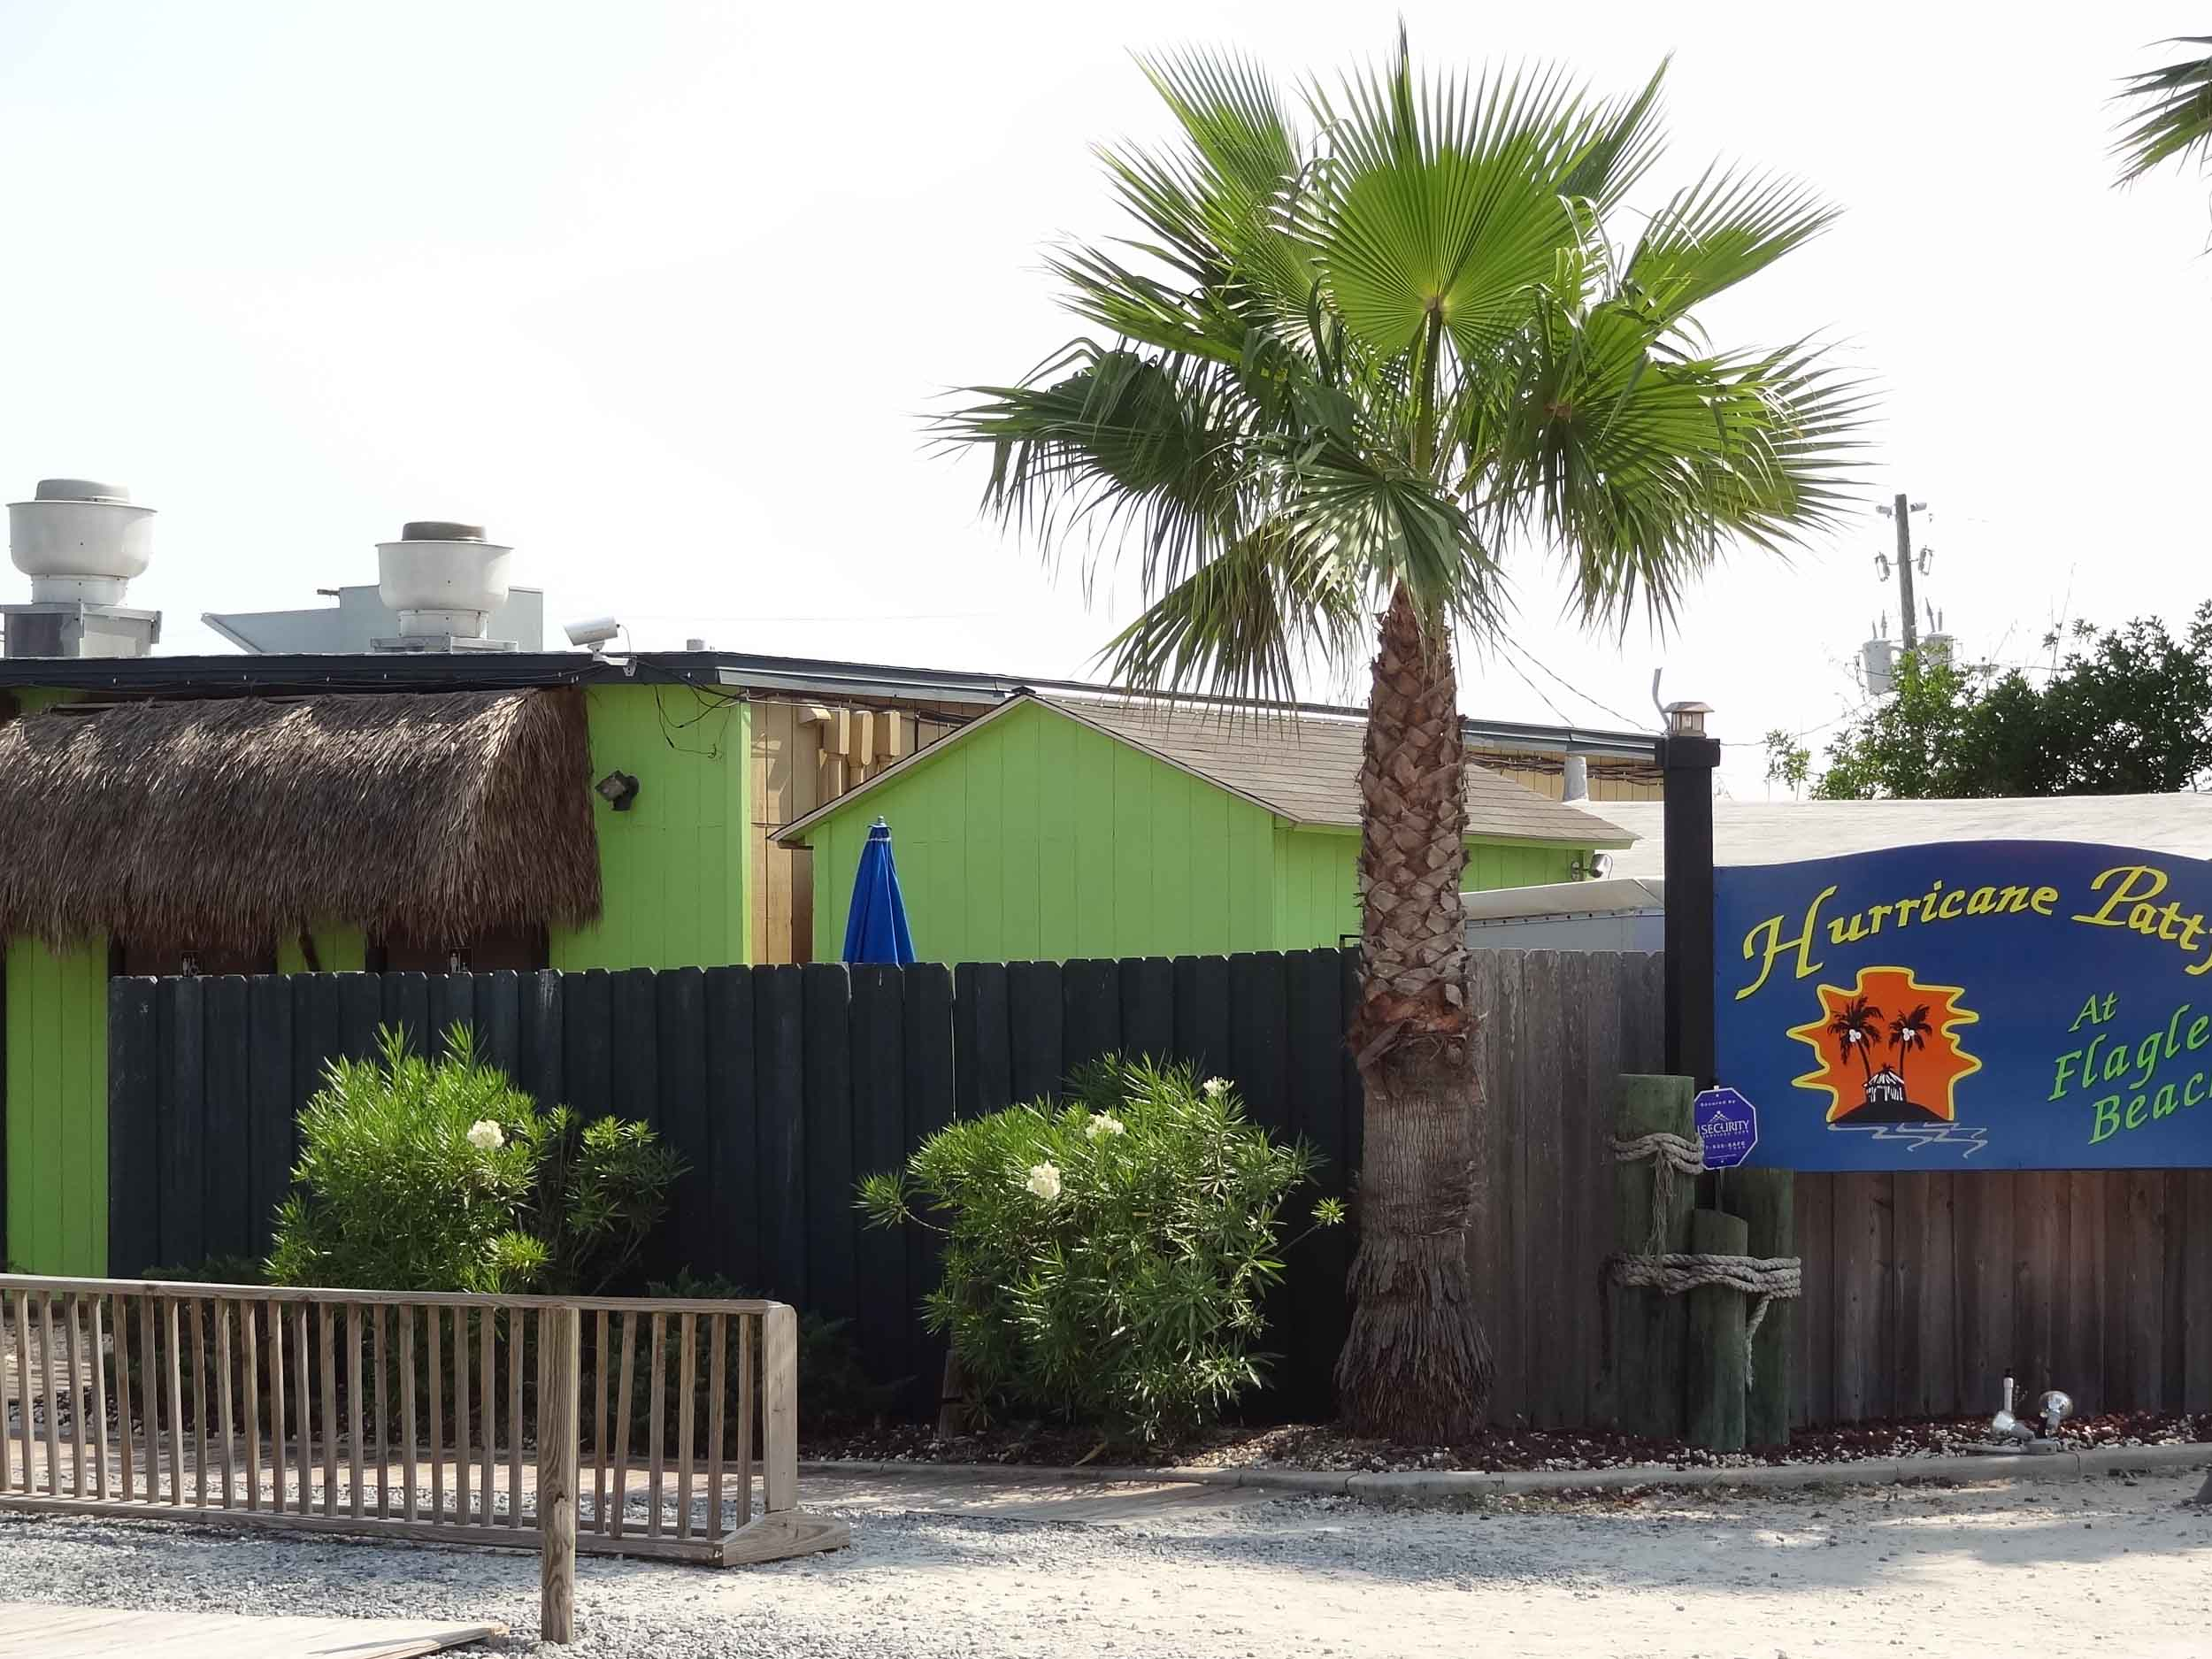 Hurricane Patty's Bar and Grill Entrance